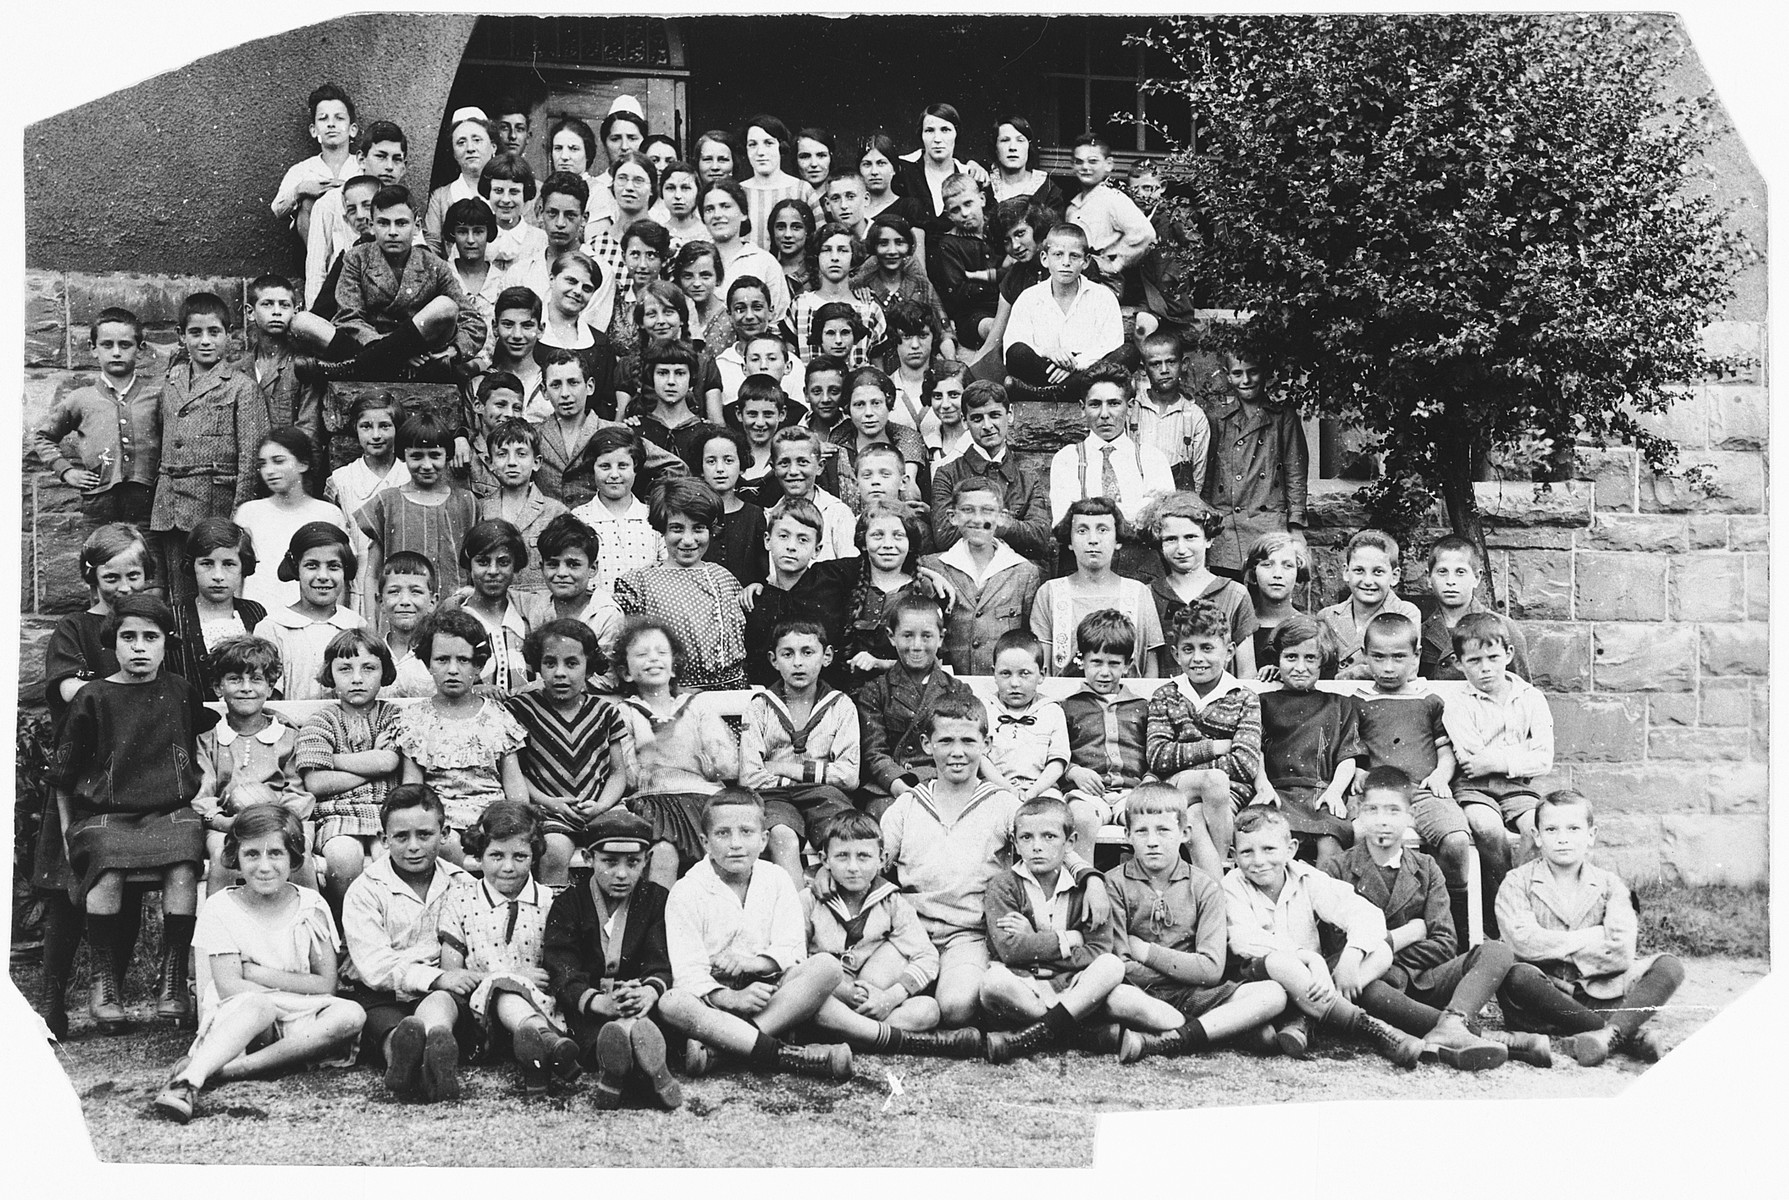 Group pictured of German Jewish children in a summer camp in Bad Sassendorf.  Gerd Zwienicki is in the center of the front row.